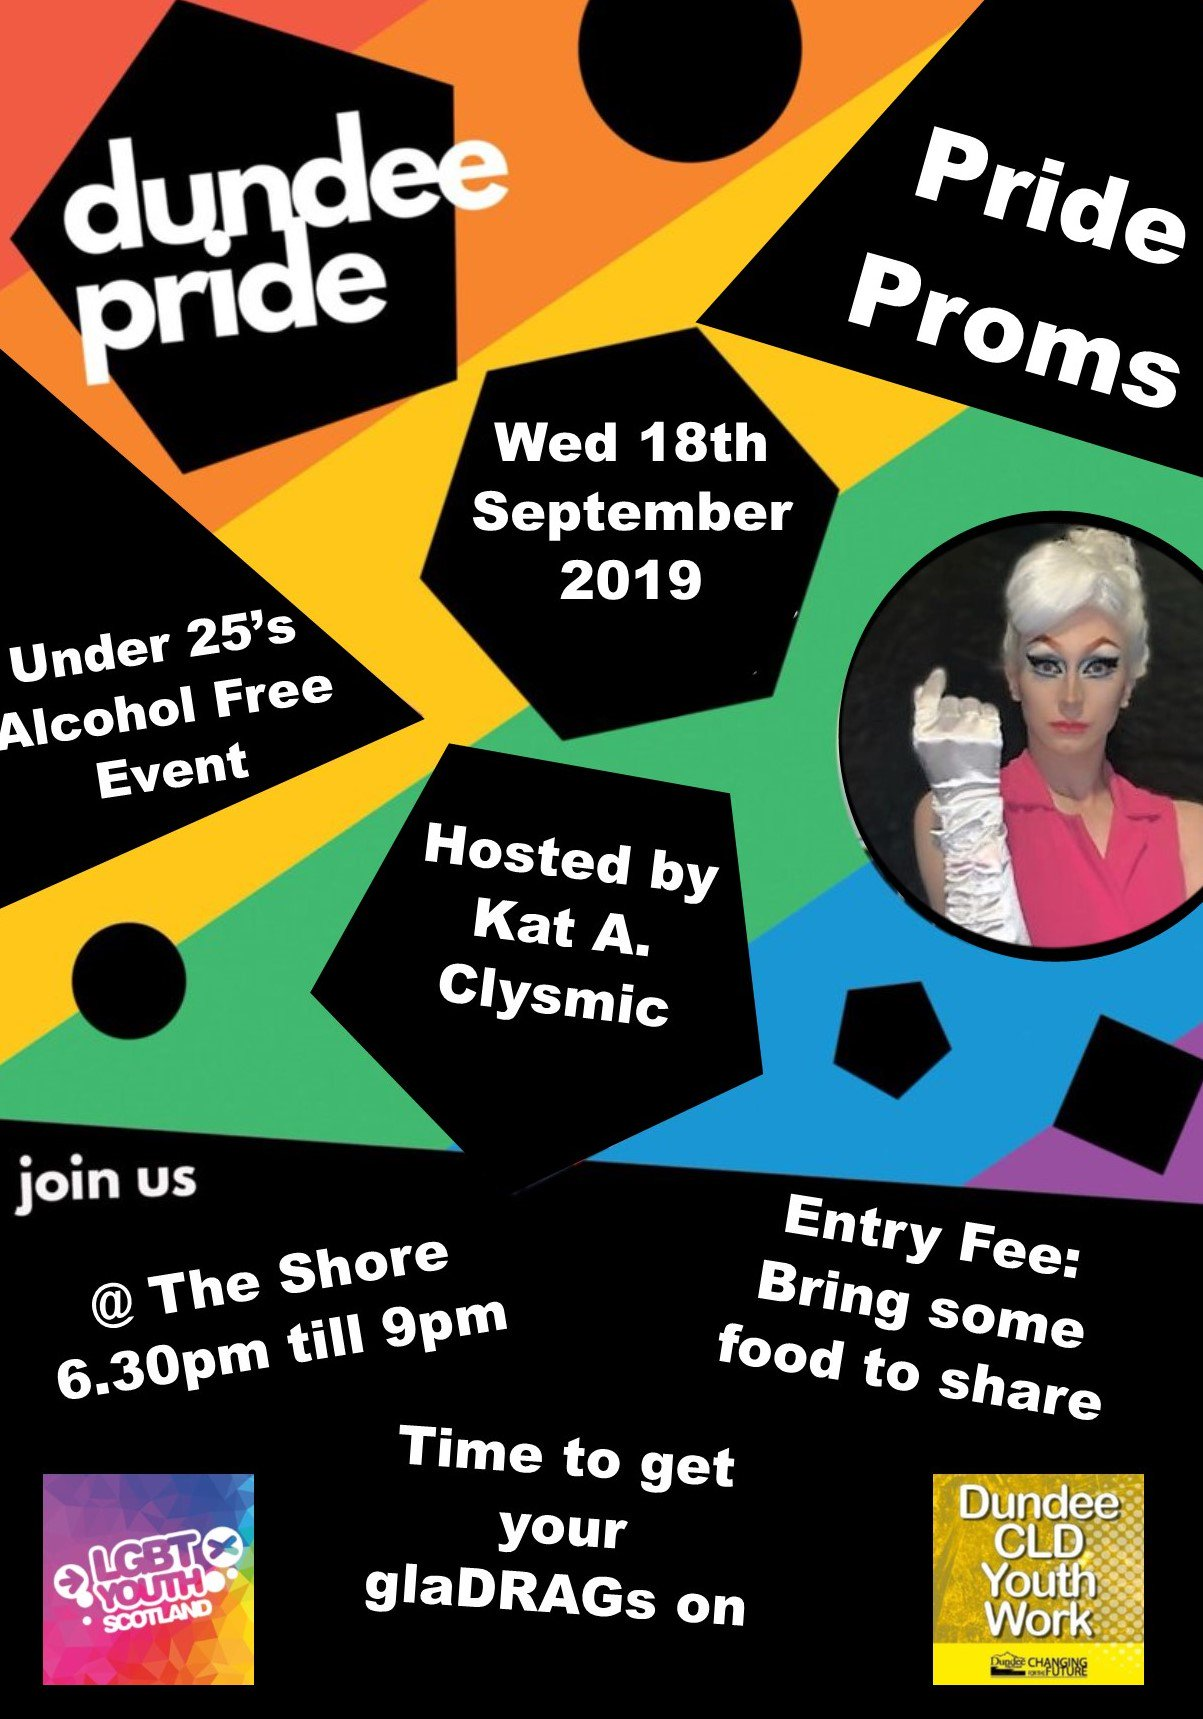 YOUNG PEOPLE: Pride Proms with LGBT Youth Scotland & Dundee CLD Youth Work - Join us for Pride Proms - an under 25's alcoho free event at The Shore from 6.30pm to 9pm hosted by the fabulous Kat A. Clysmic!WHEN: Wednesday 18th September 18:30 - 21:00WHERE: The Shore, 15 Shore Terrace, Dundee DD1 3DNFREE but bring some food to share!